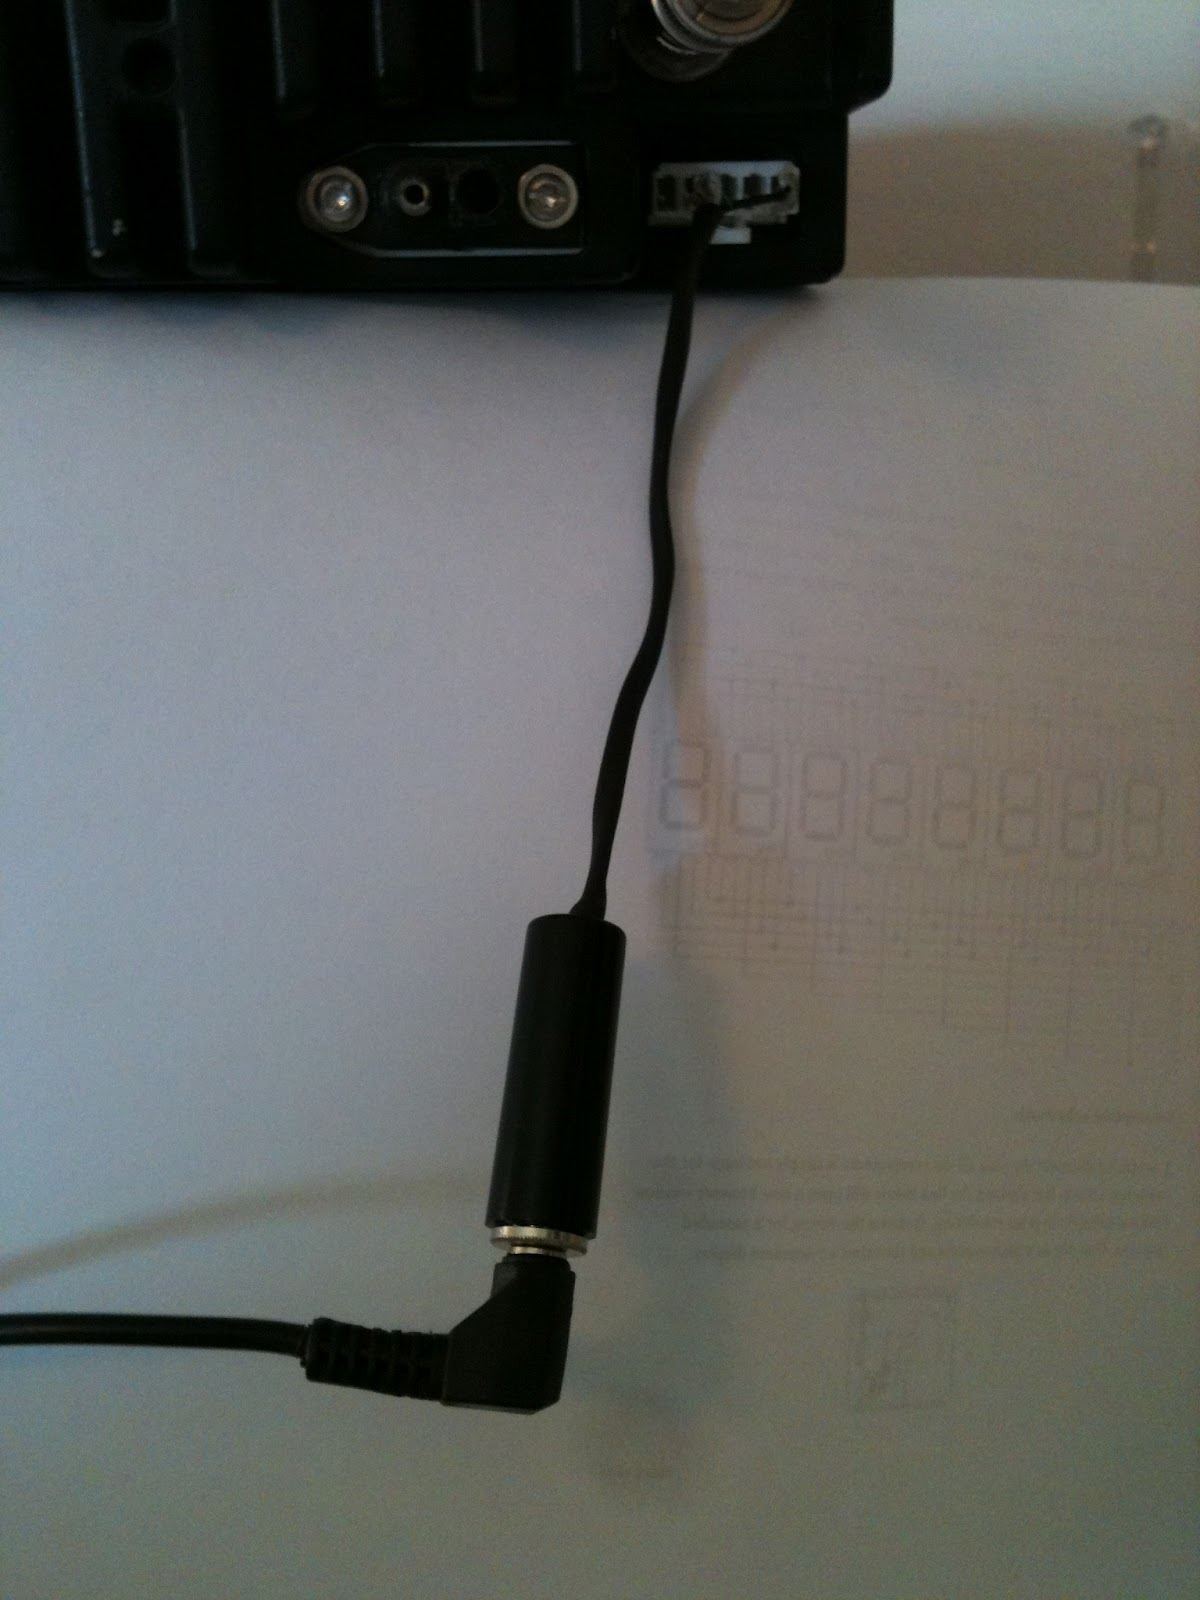 medium resolution of wires from pin 1 ground and pin 4 external speaker